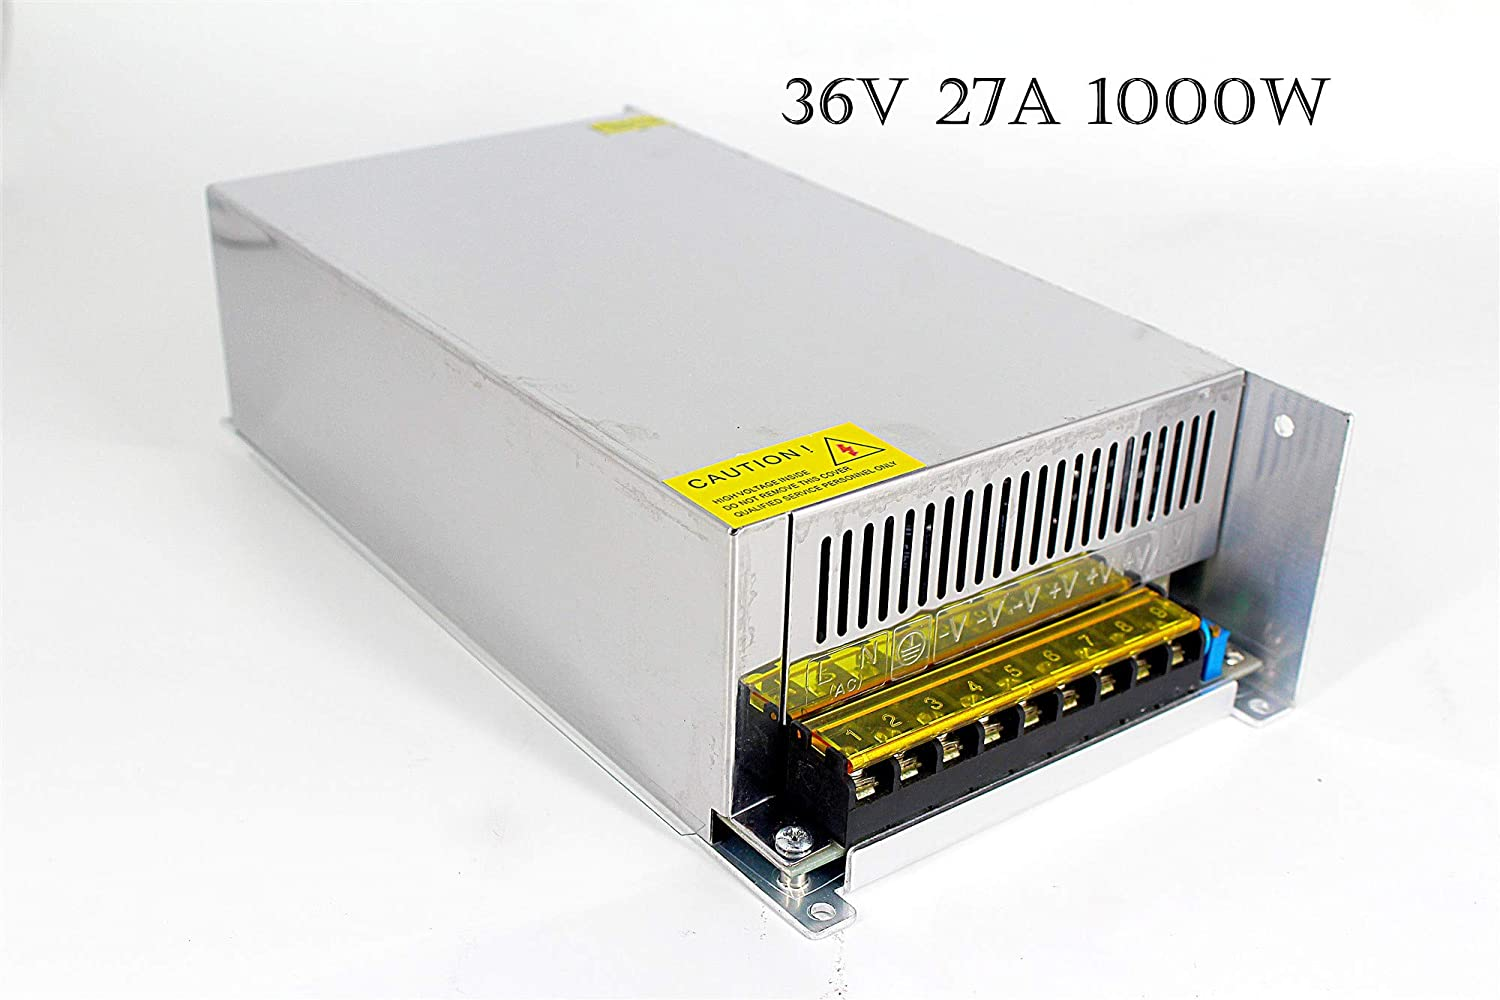 YI MEI DA Upgrade Switching Power Supply 36v 27a 1000w Power Adapter Driver Transformers 110v/220v AC SMPS for CCTV, Radio, Computer Project Led Strip Modules Light